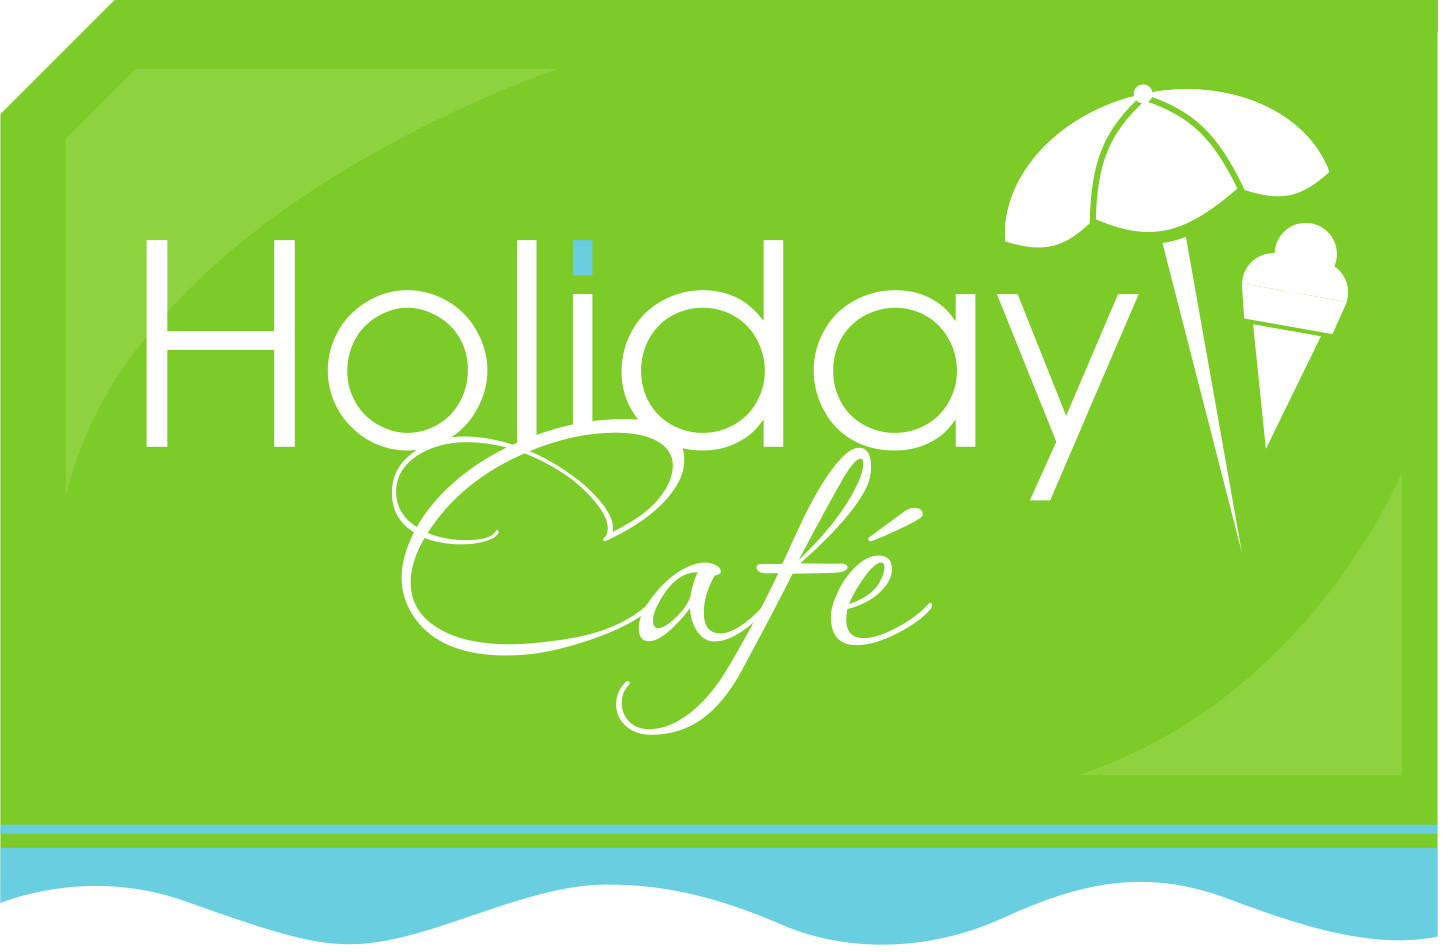 Holiday Cafe | Adding the personal touch